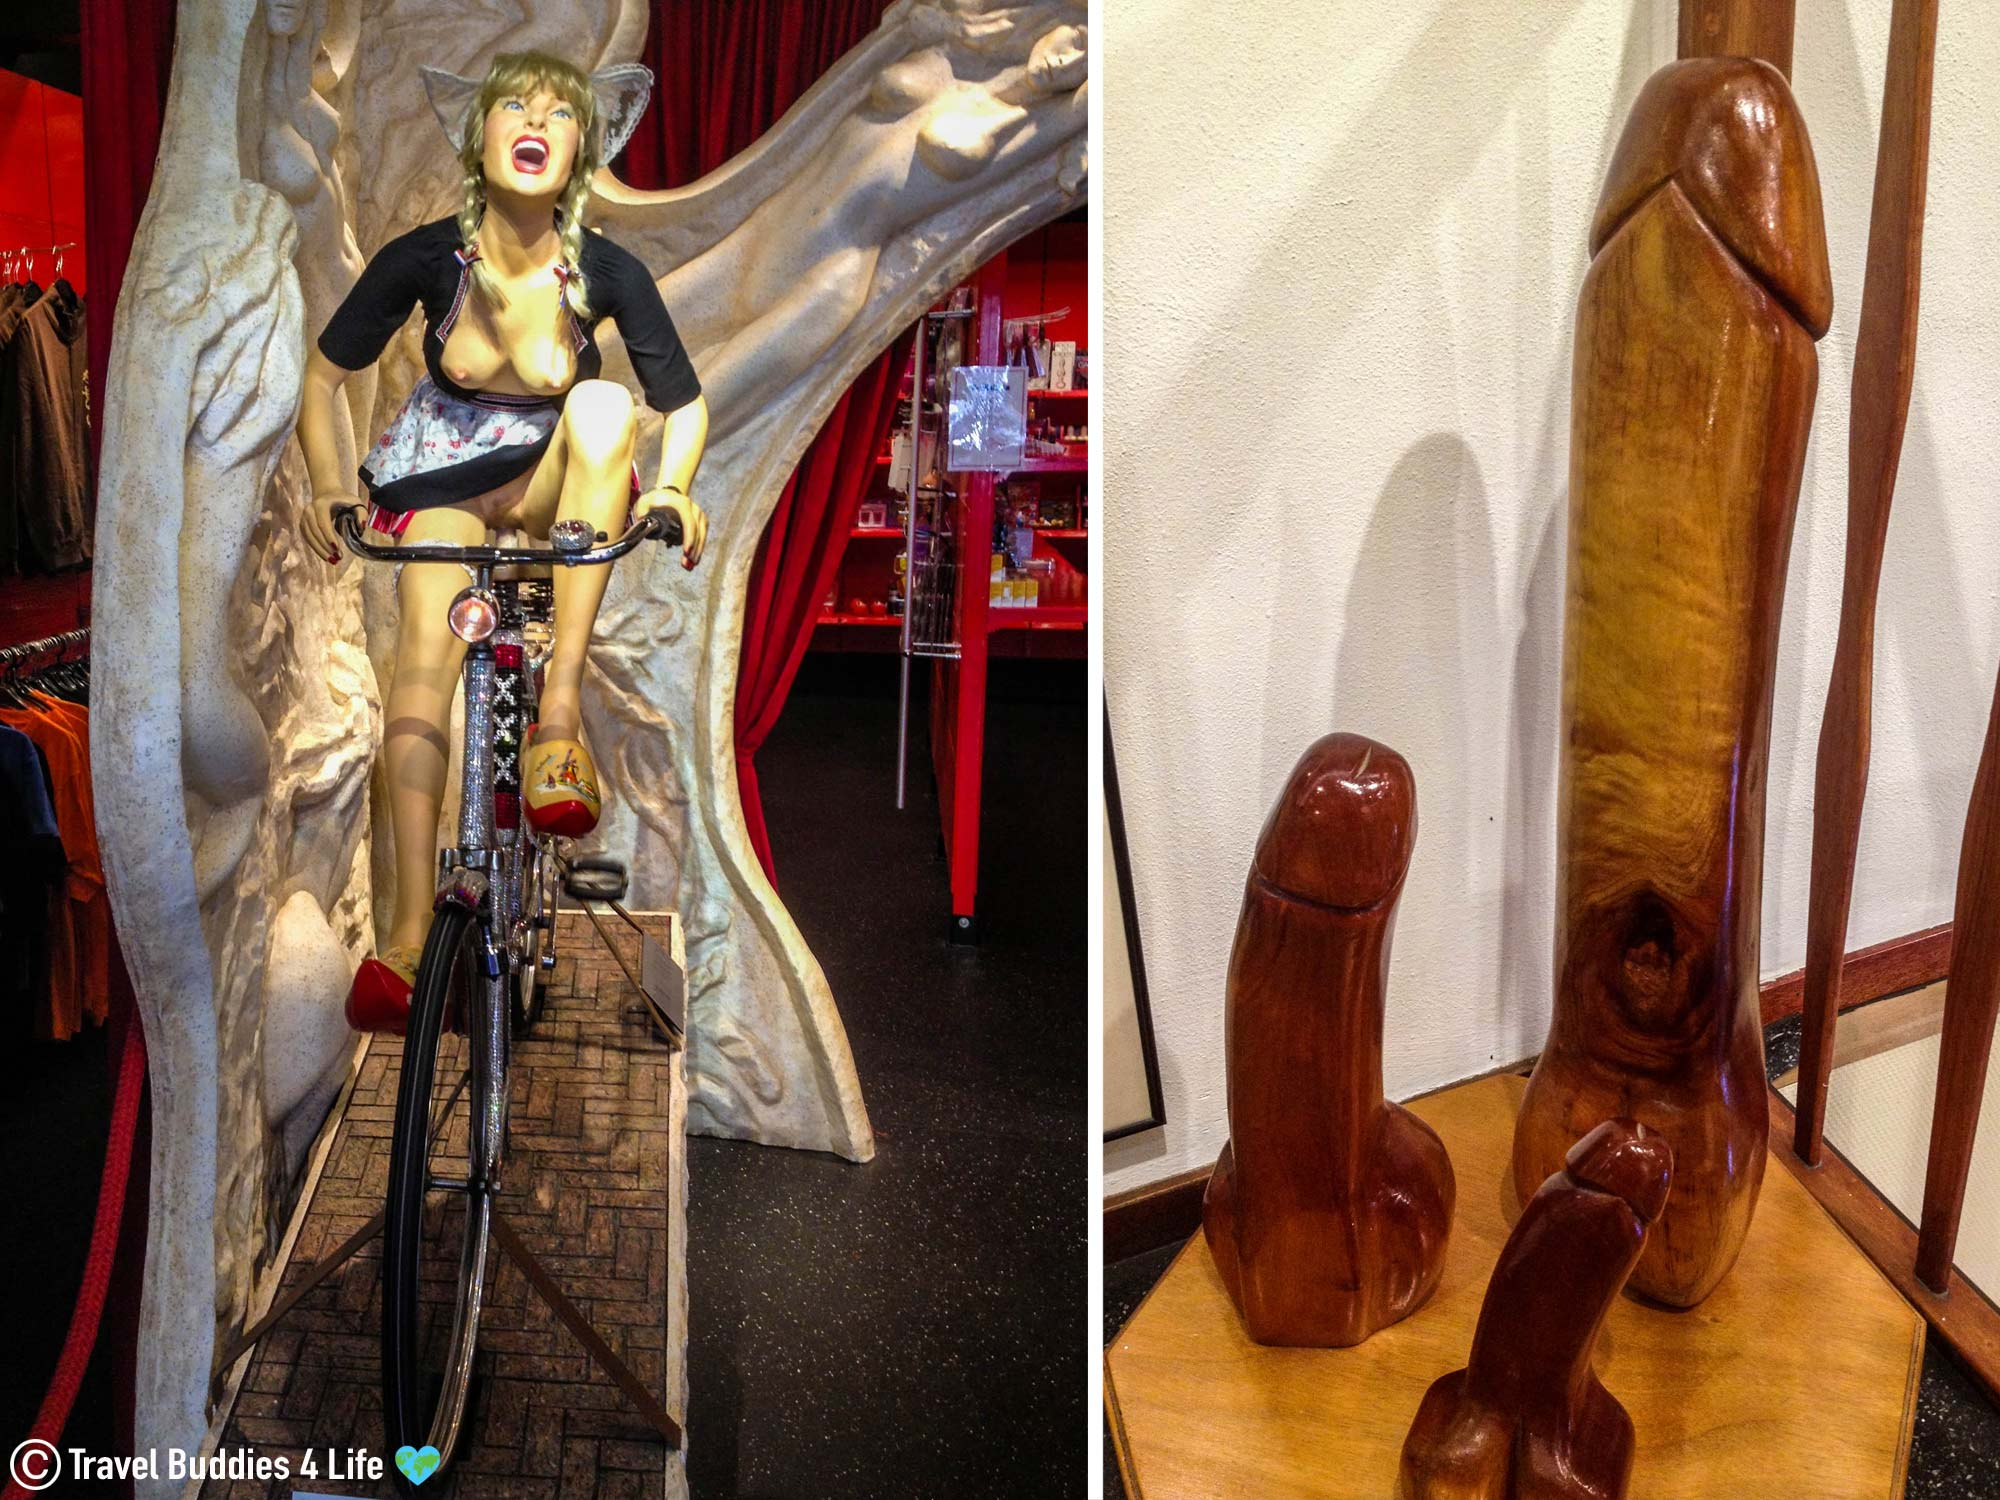 Sexual Items From The Red Light District Of Amsterdam, Netherlands, Europe